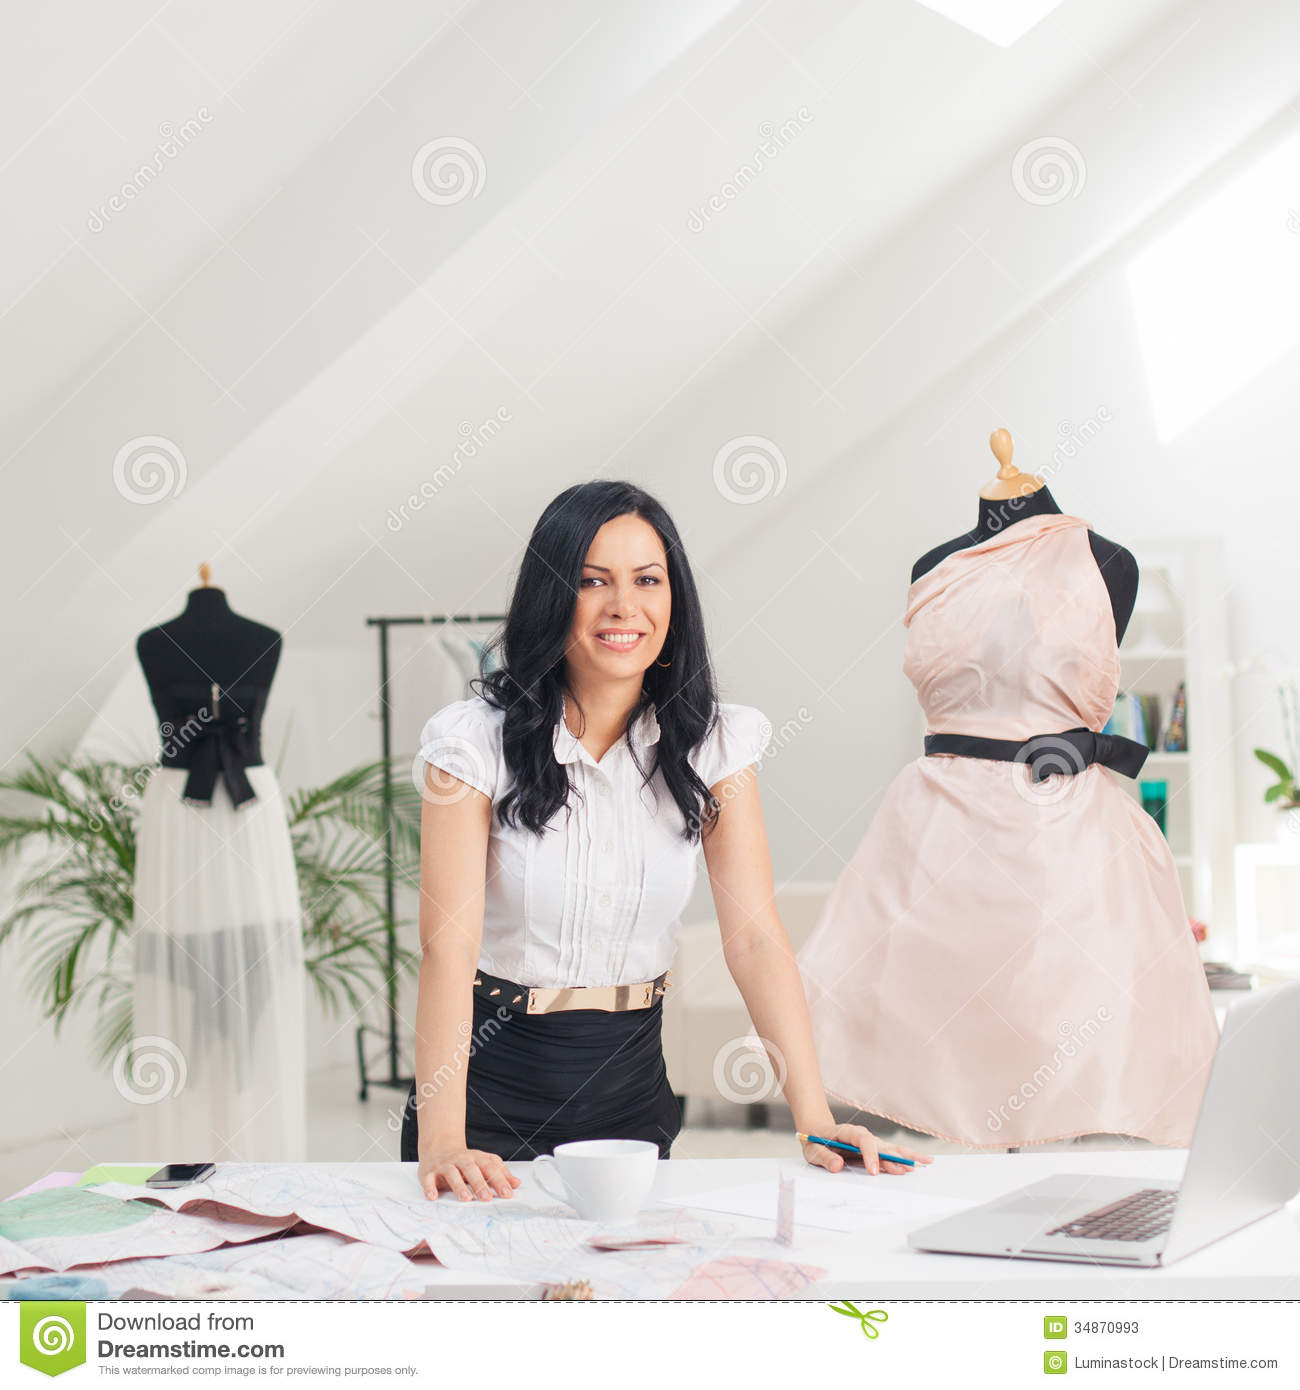 Fashion Designer At Her Studio Stock Photos Image 34870993